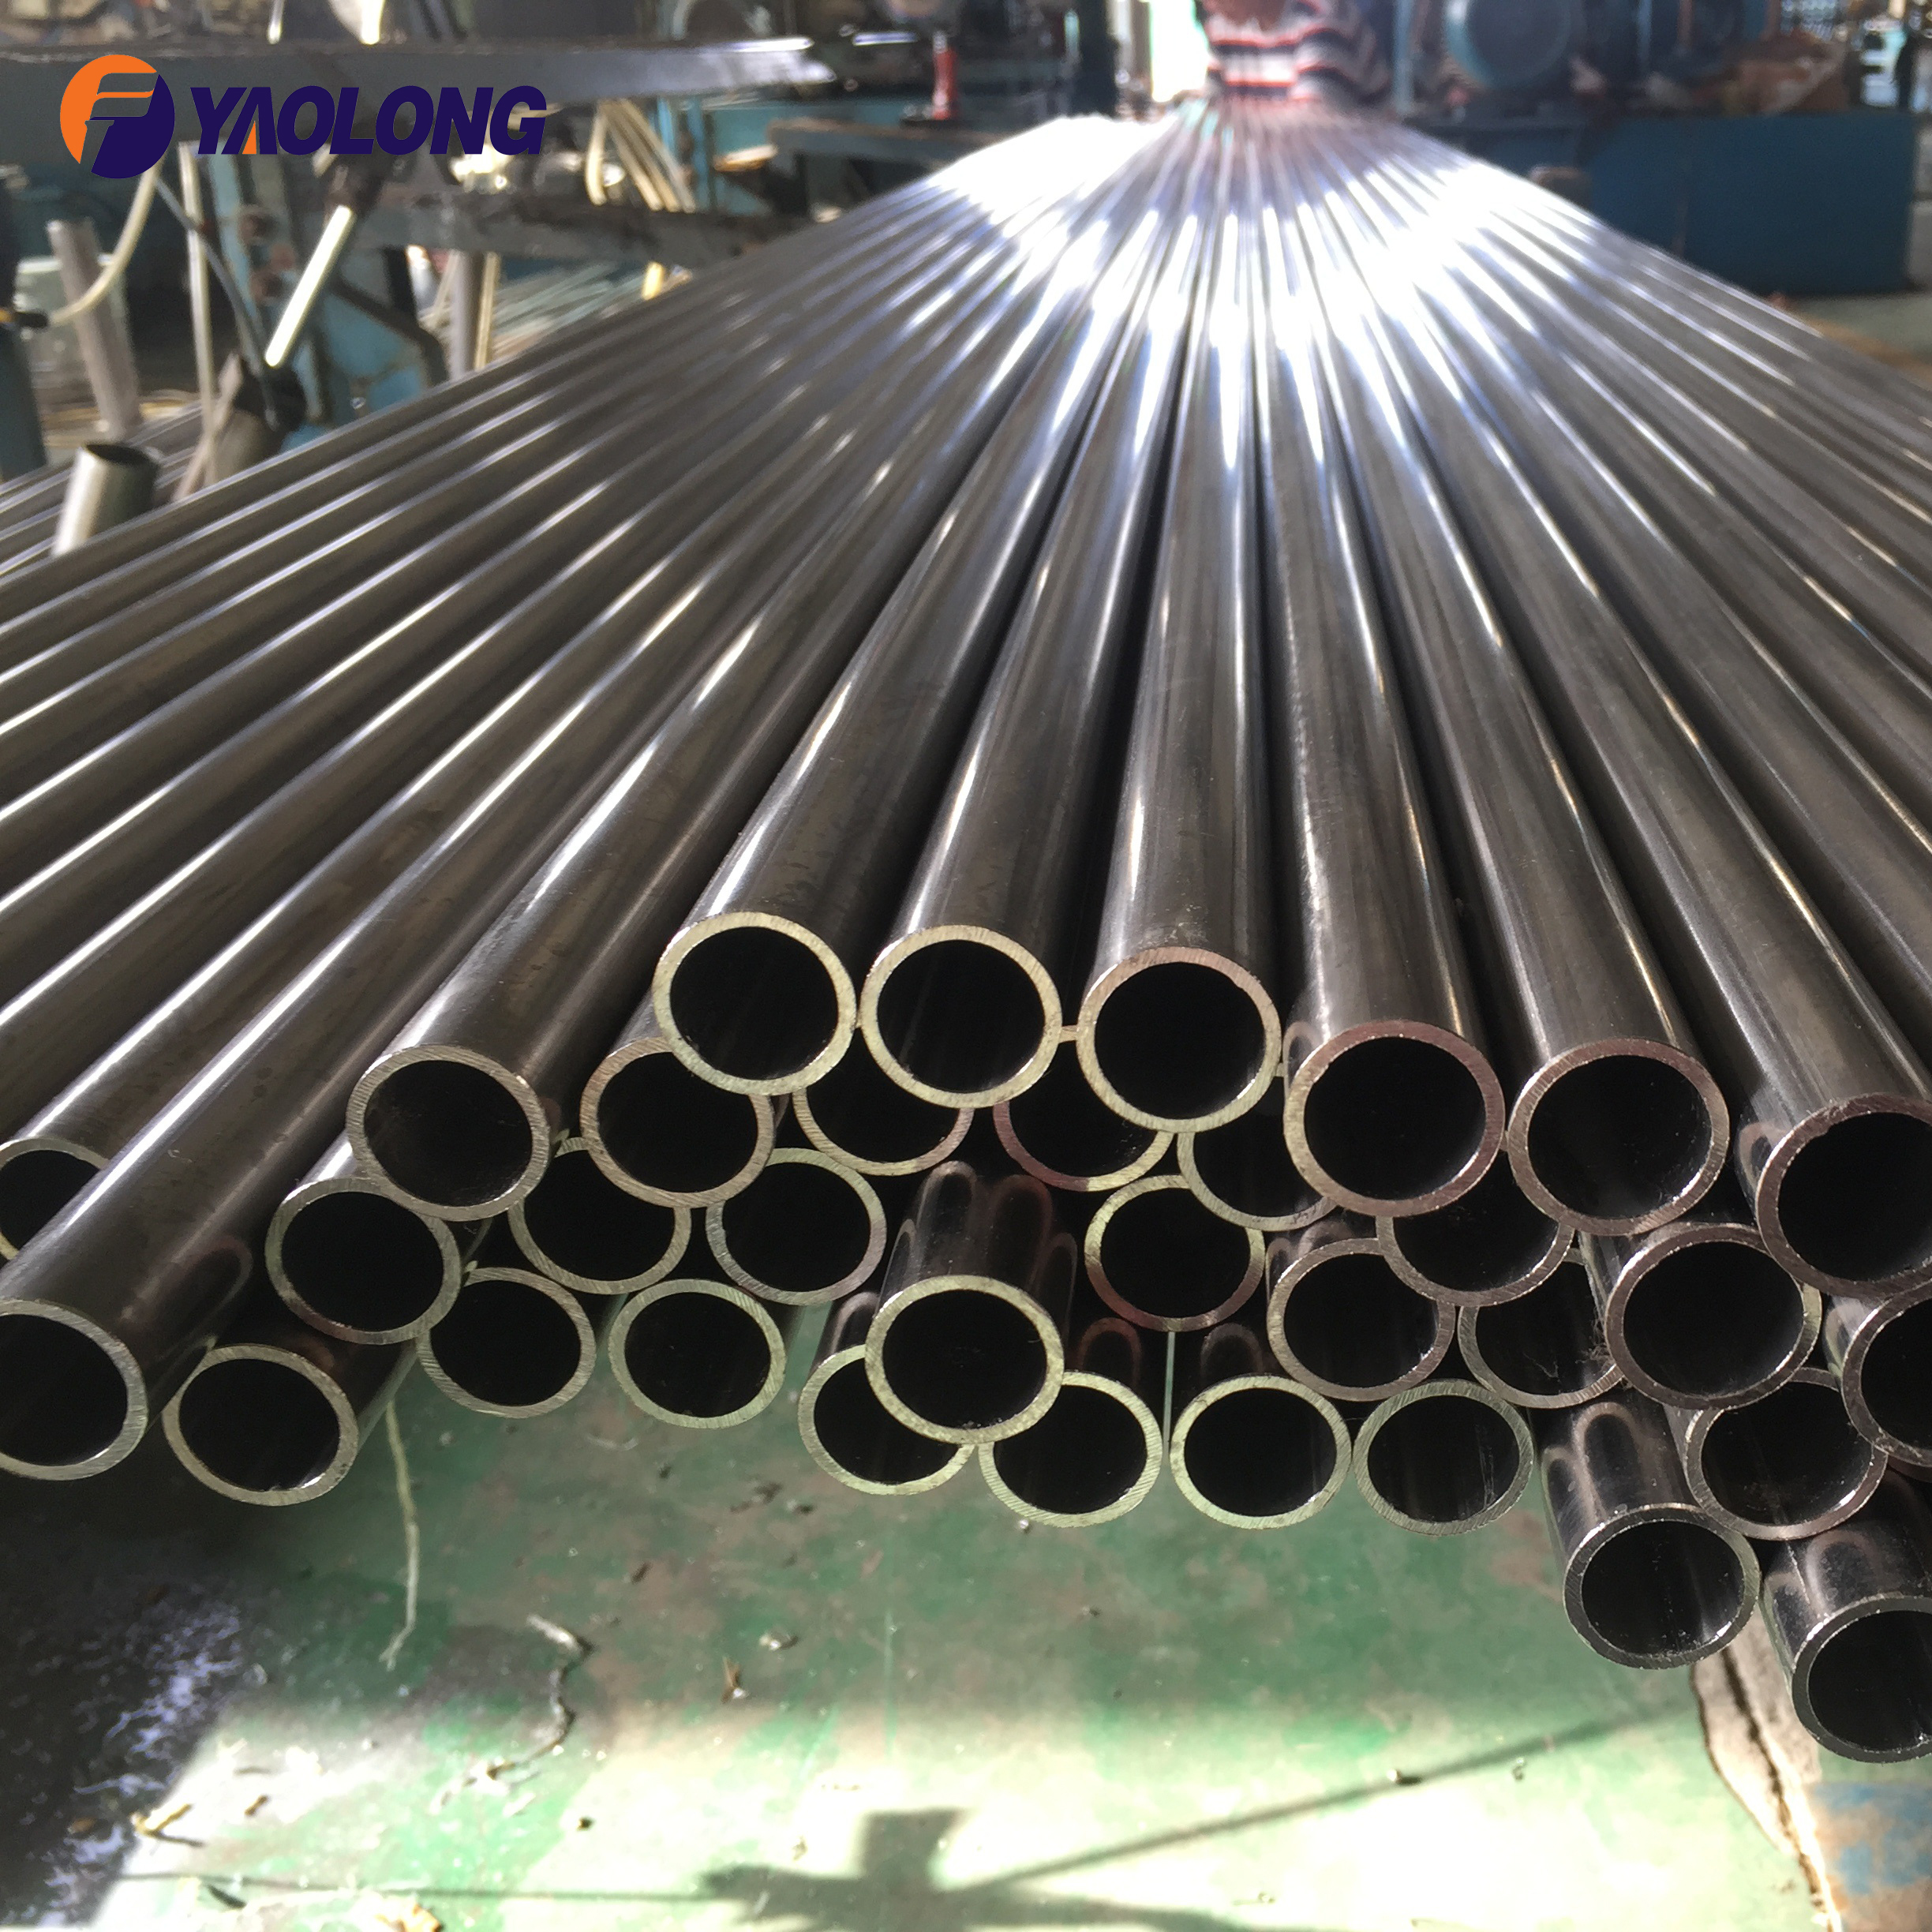 Foshan 5 inch inox welding pipe stainless steel boiler pipe for sale